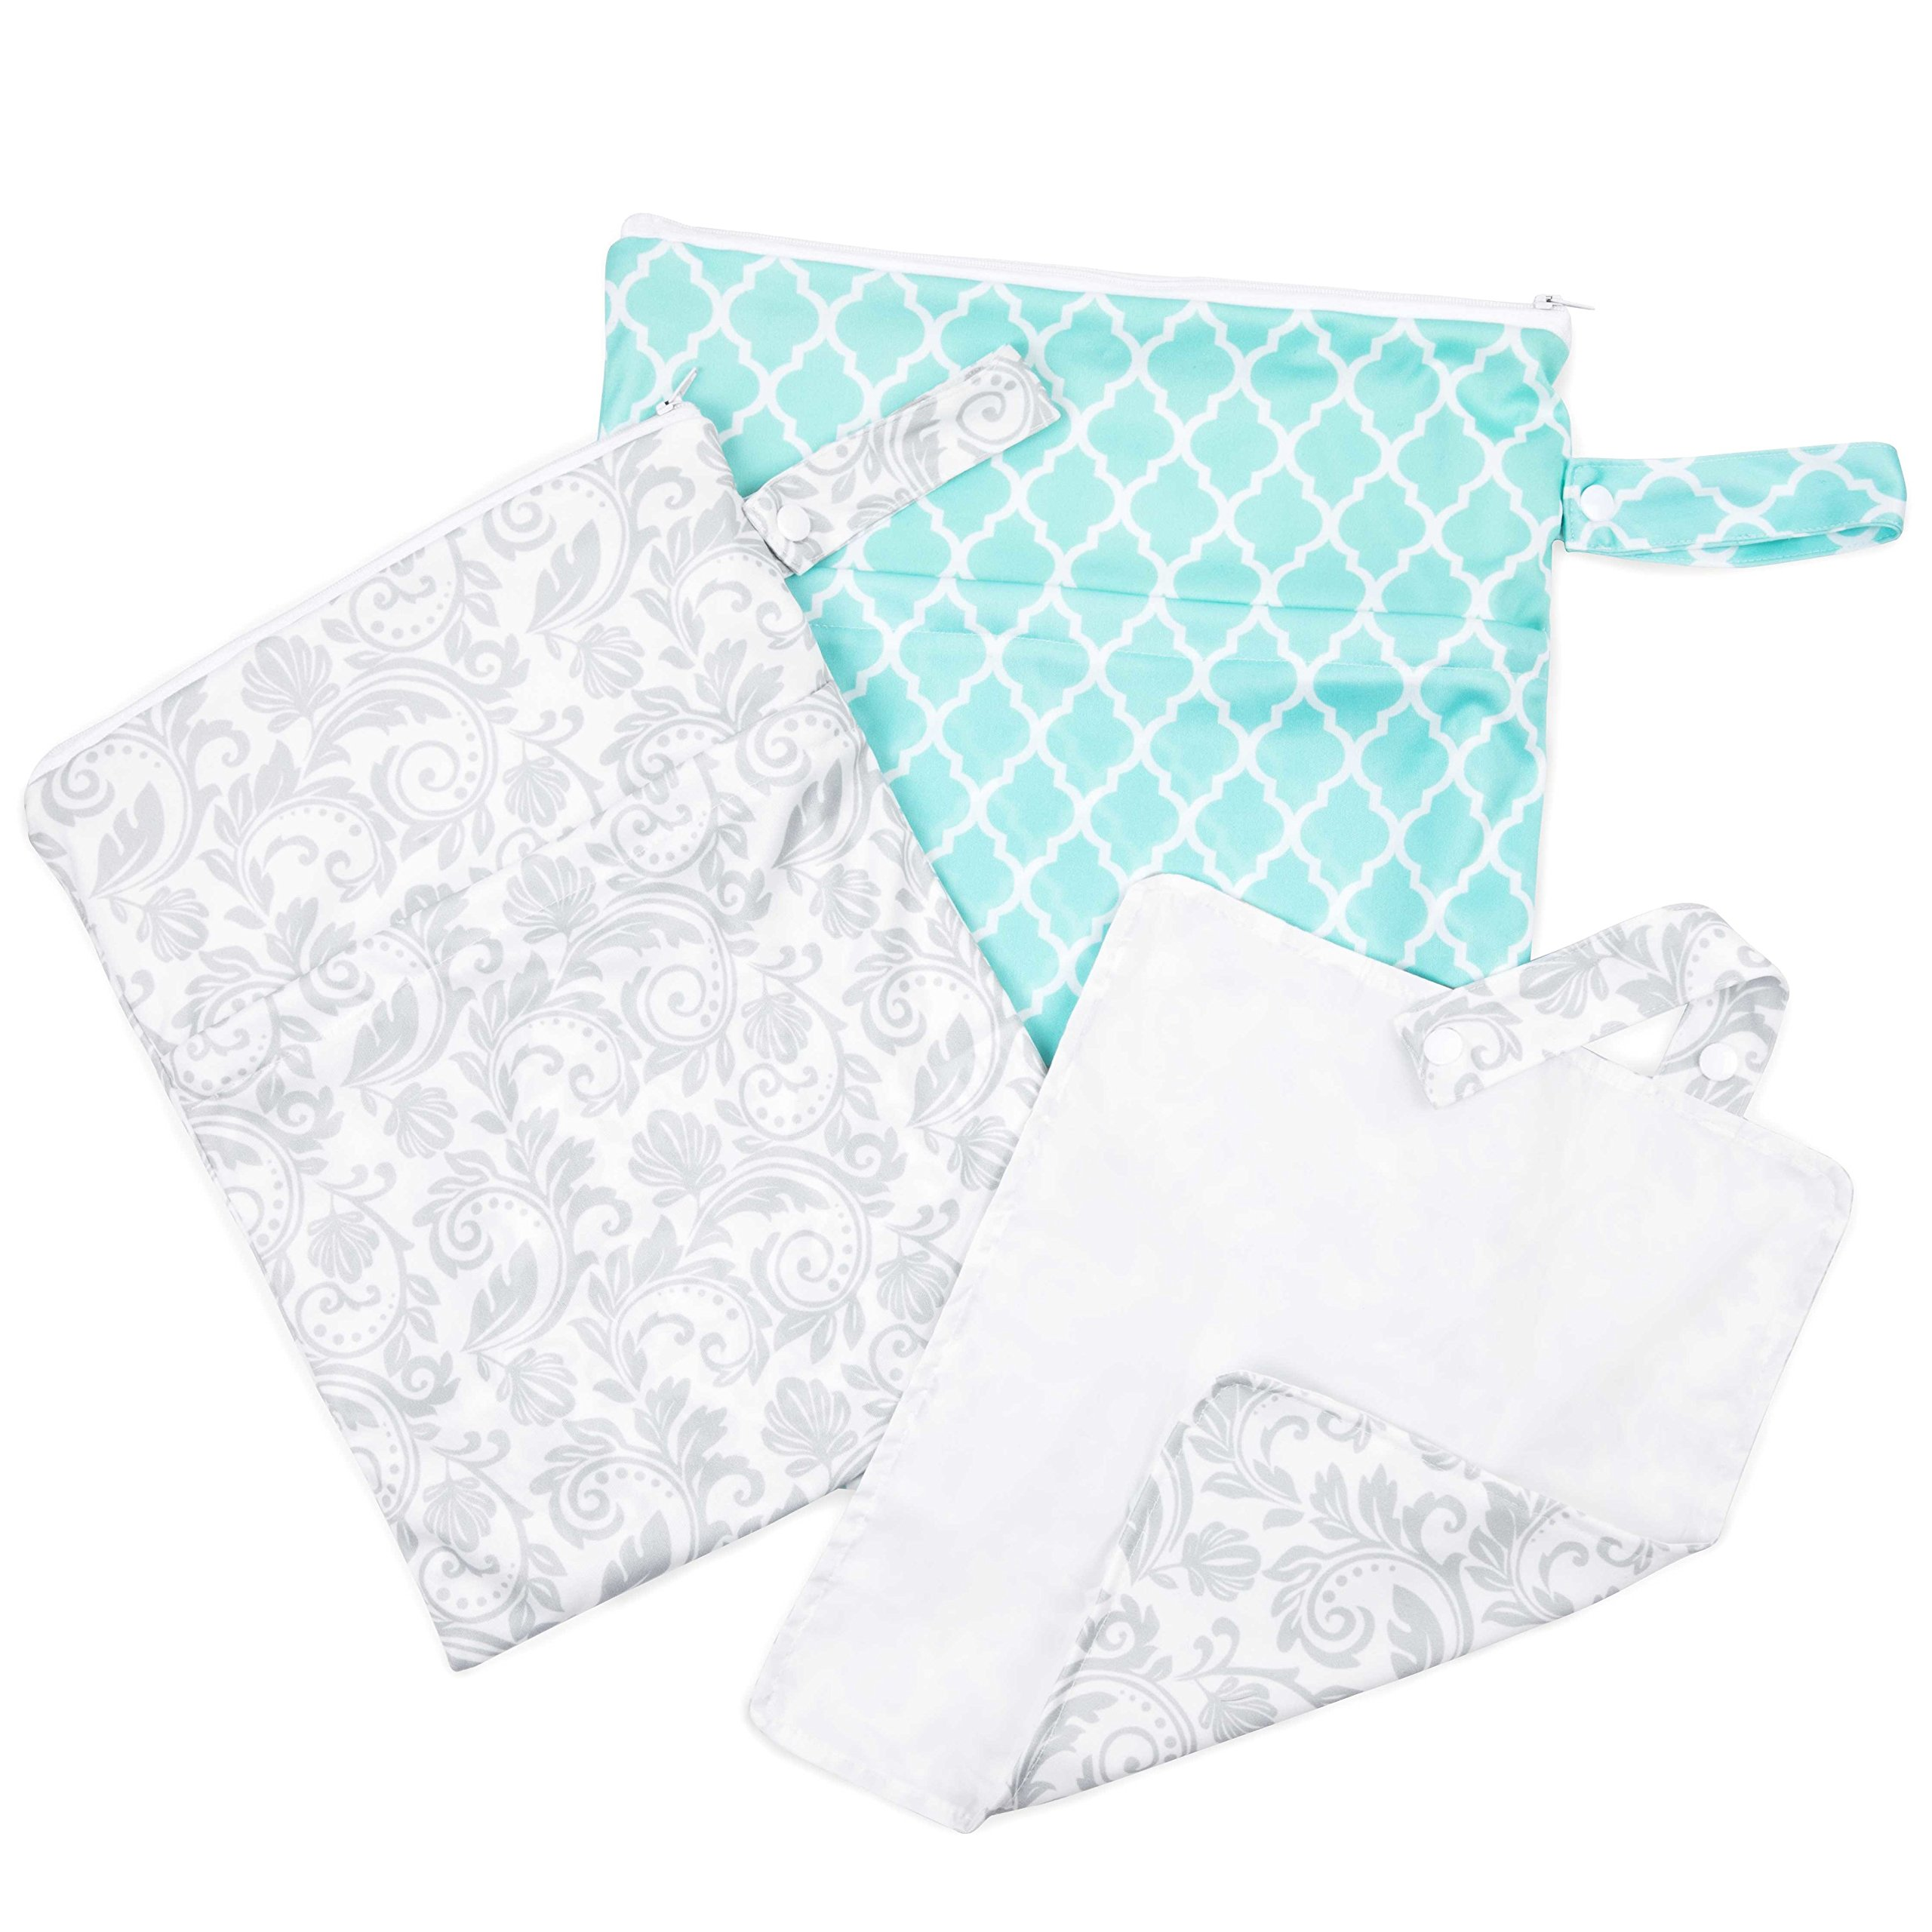 Waterproof Baby Diaper Bag Set: Reusable Wet Dry Laundry Bags for Cloth Diapers by Jomolly